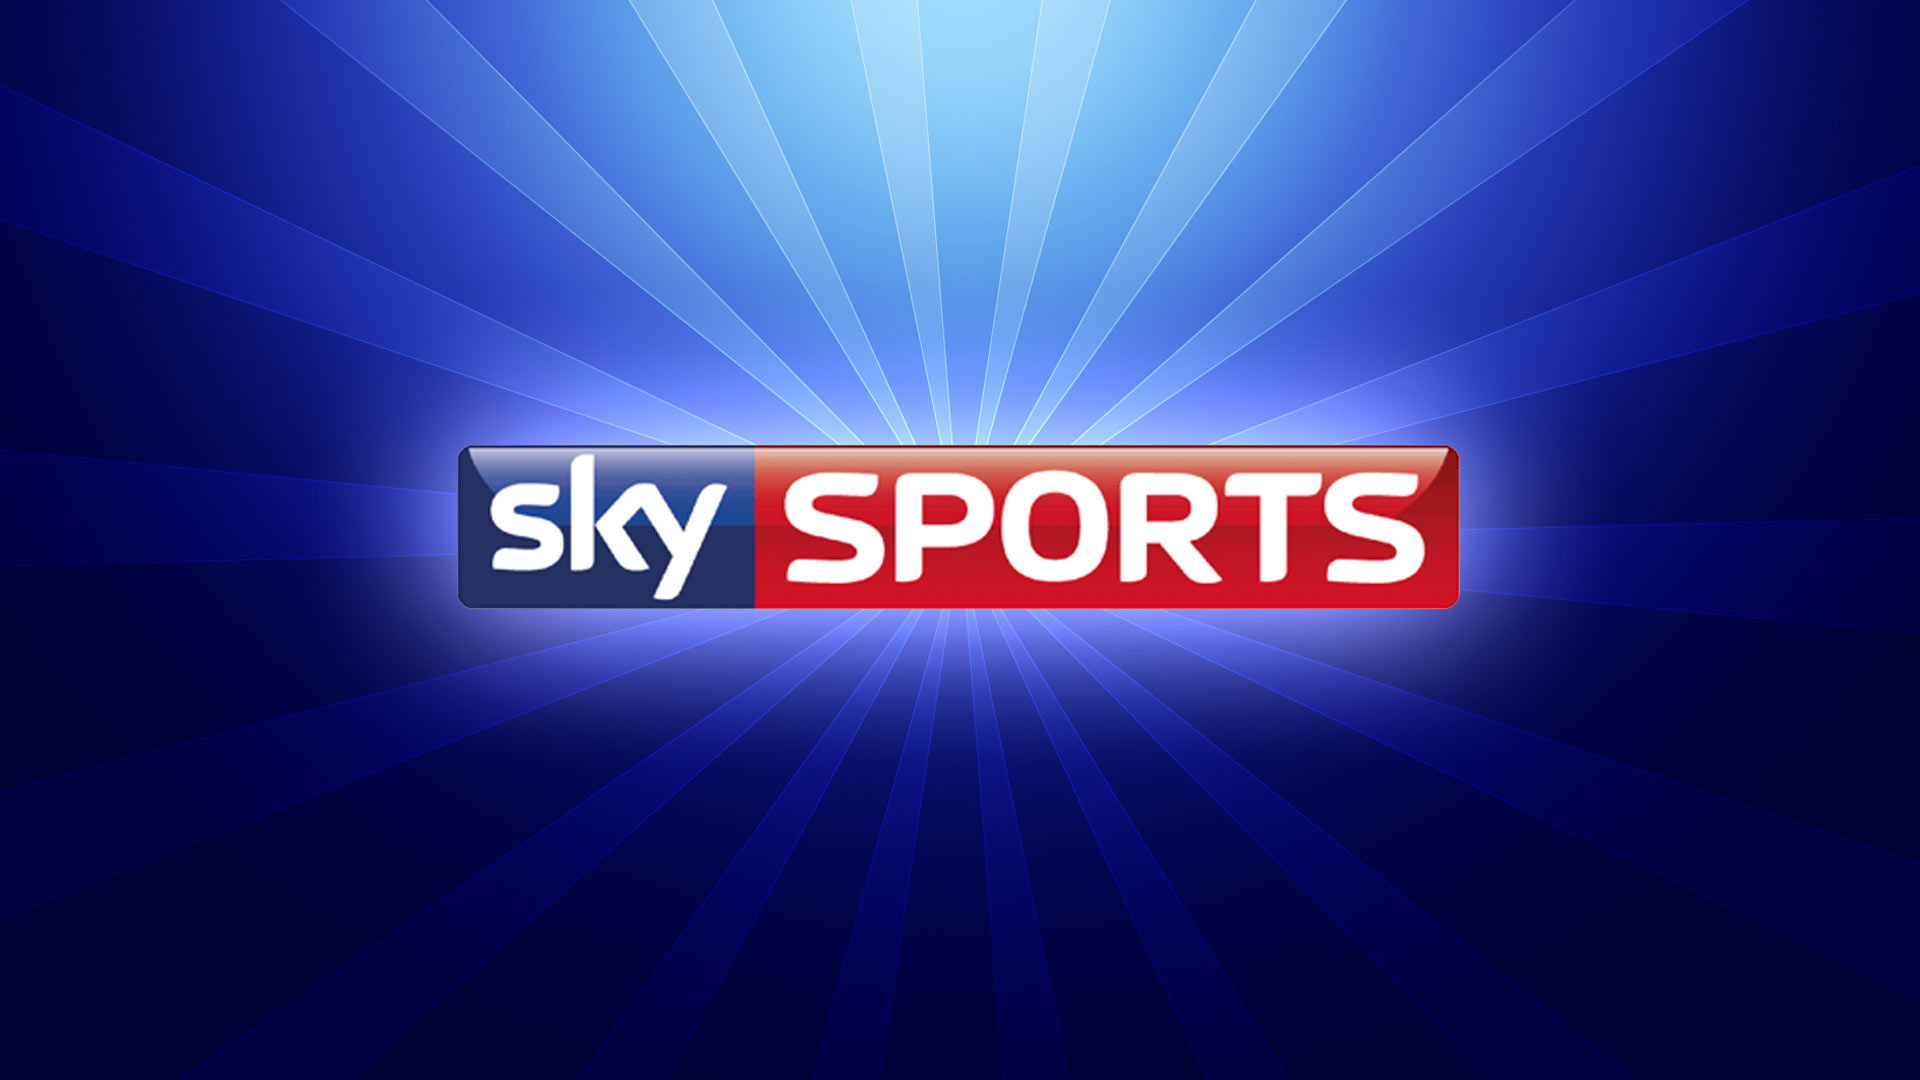 regarder sky sports en direct live 100 gratuit tv direct. Black Bedroom Furniture Sets. Home Design Ideas